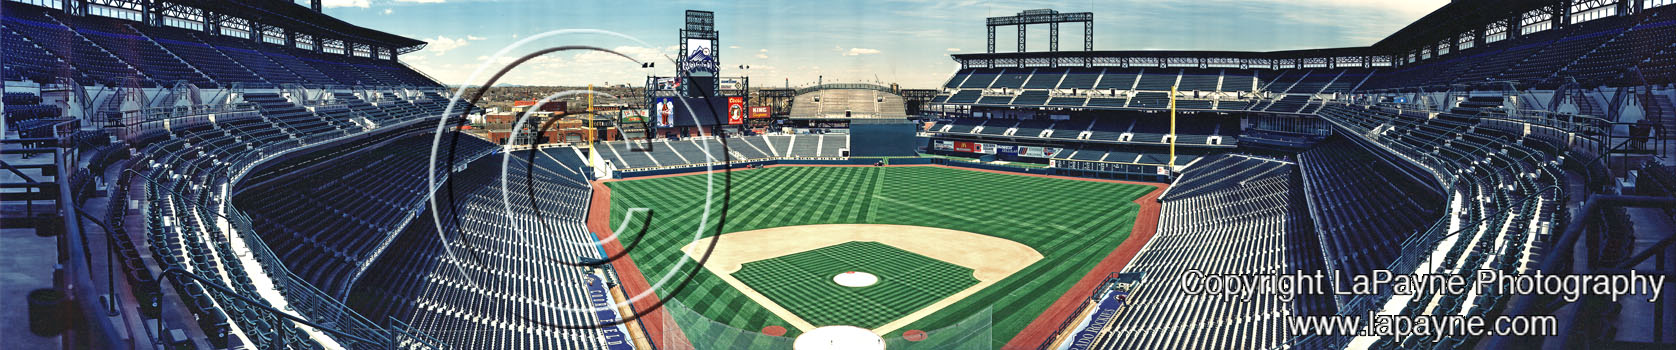 Coors Field 1995 Panorama